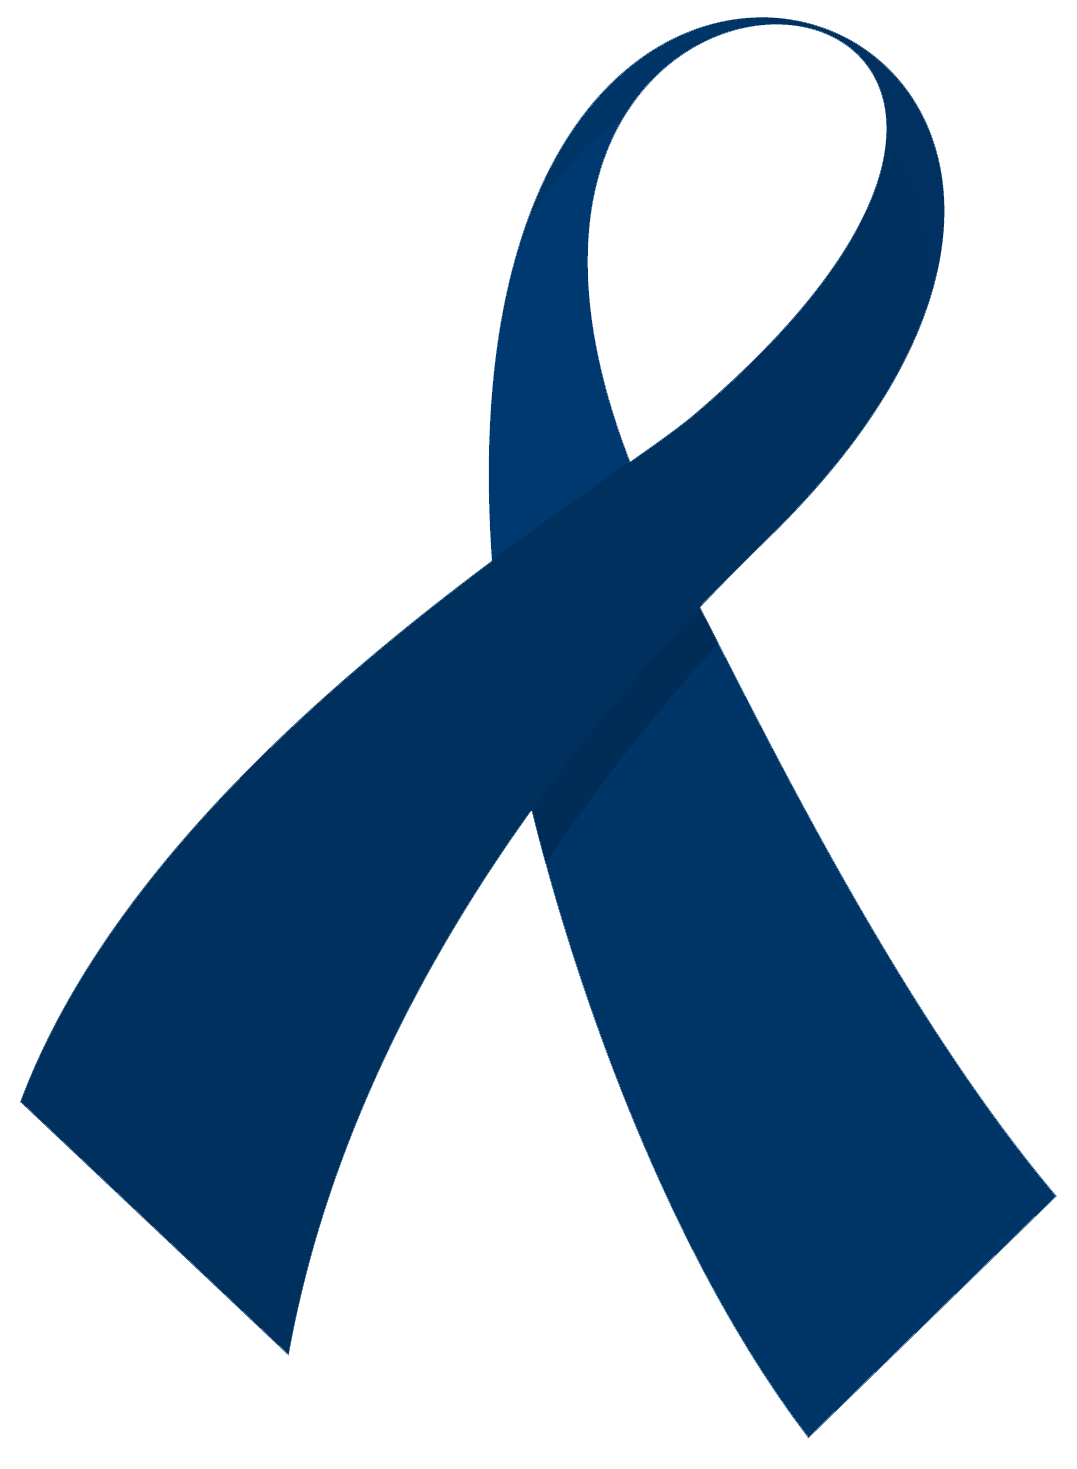 Vector Awareness Ribbon - ClipArt Best